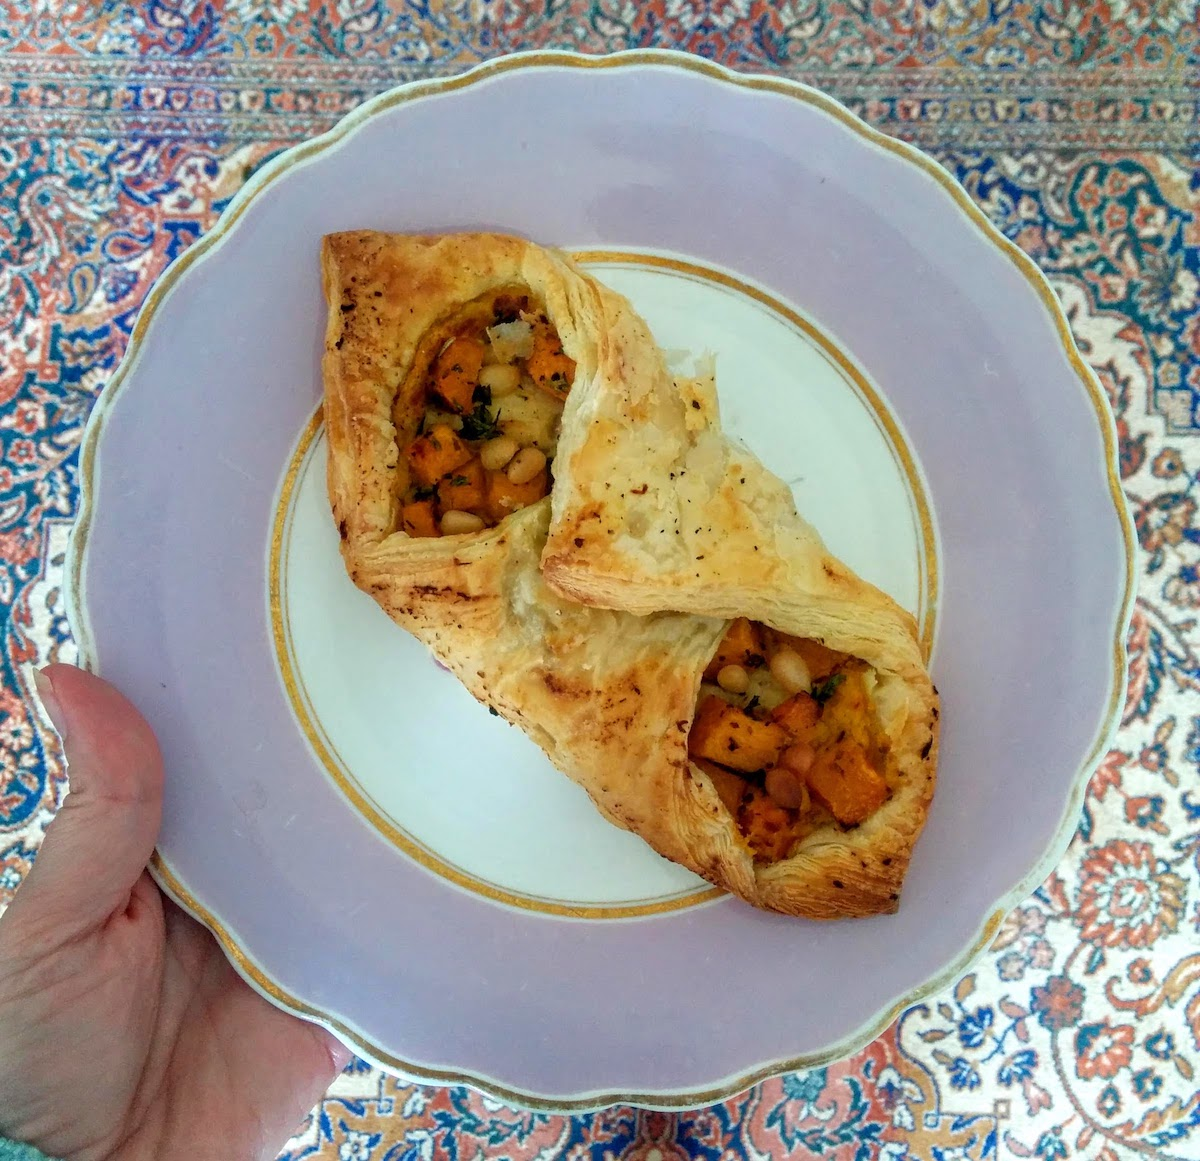 Butternut squash turnover from the French Fox